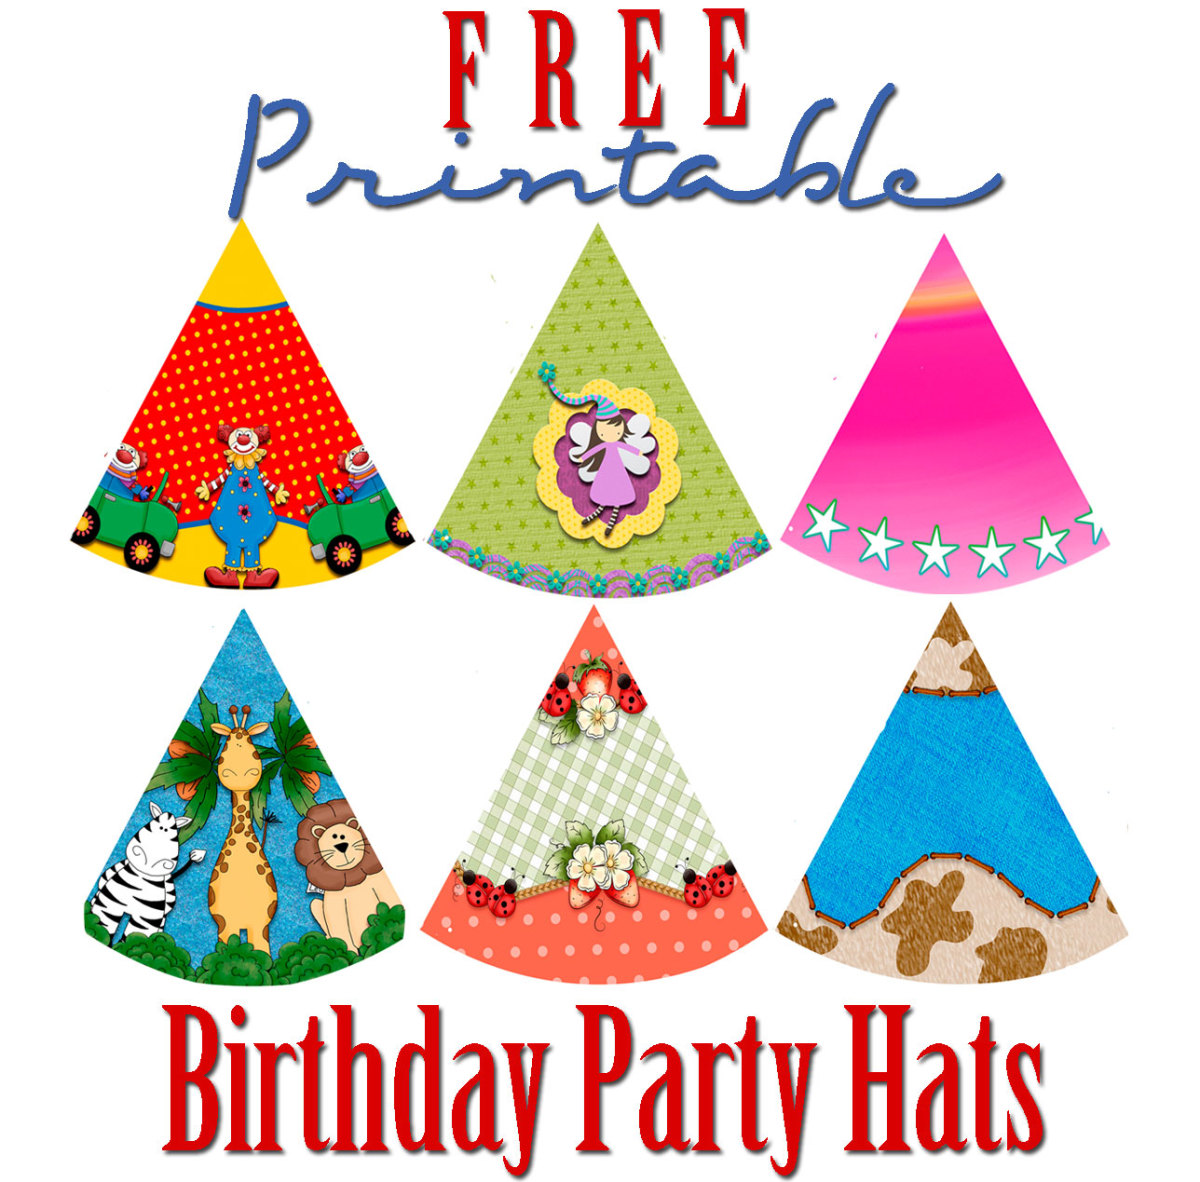 Free Printable Birthday Party Hats